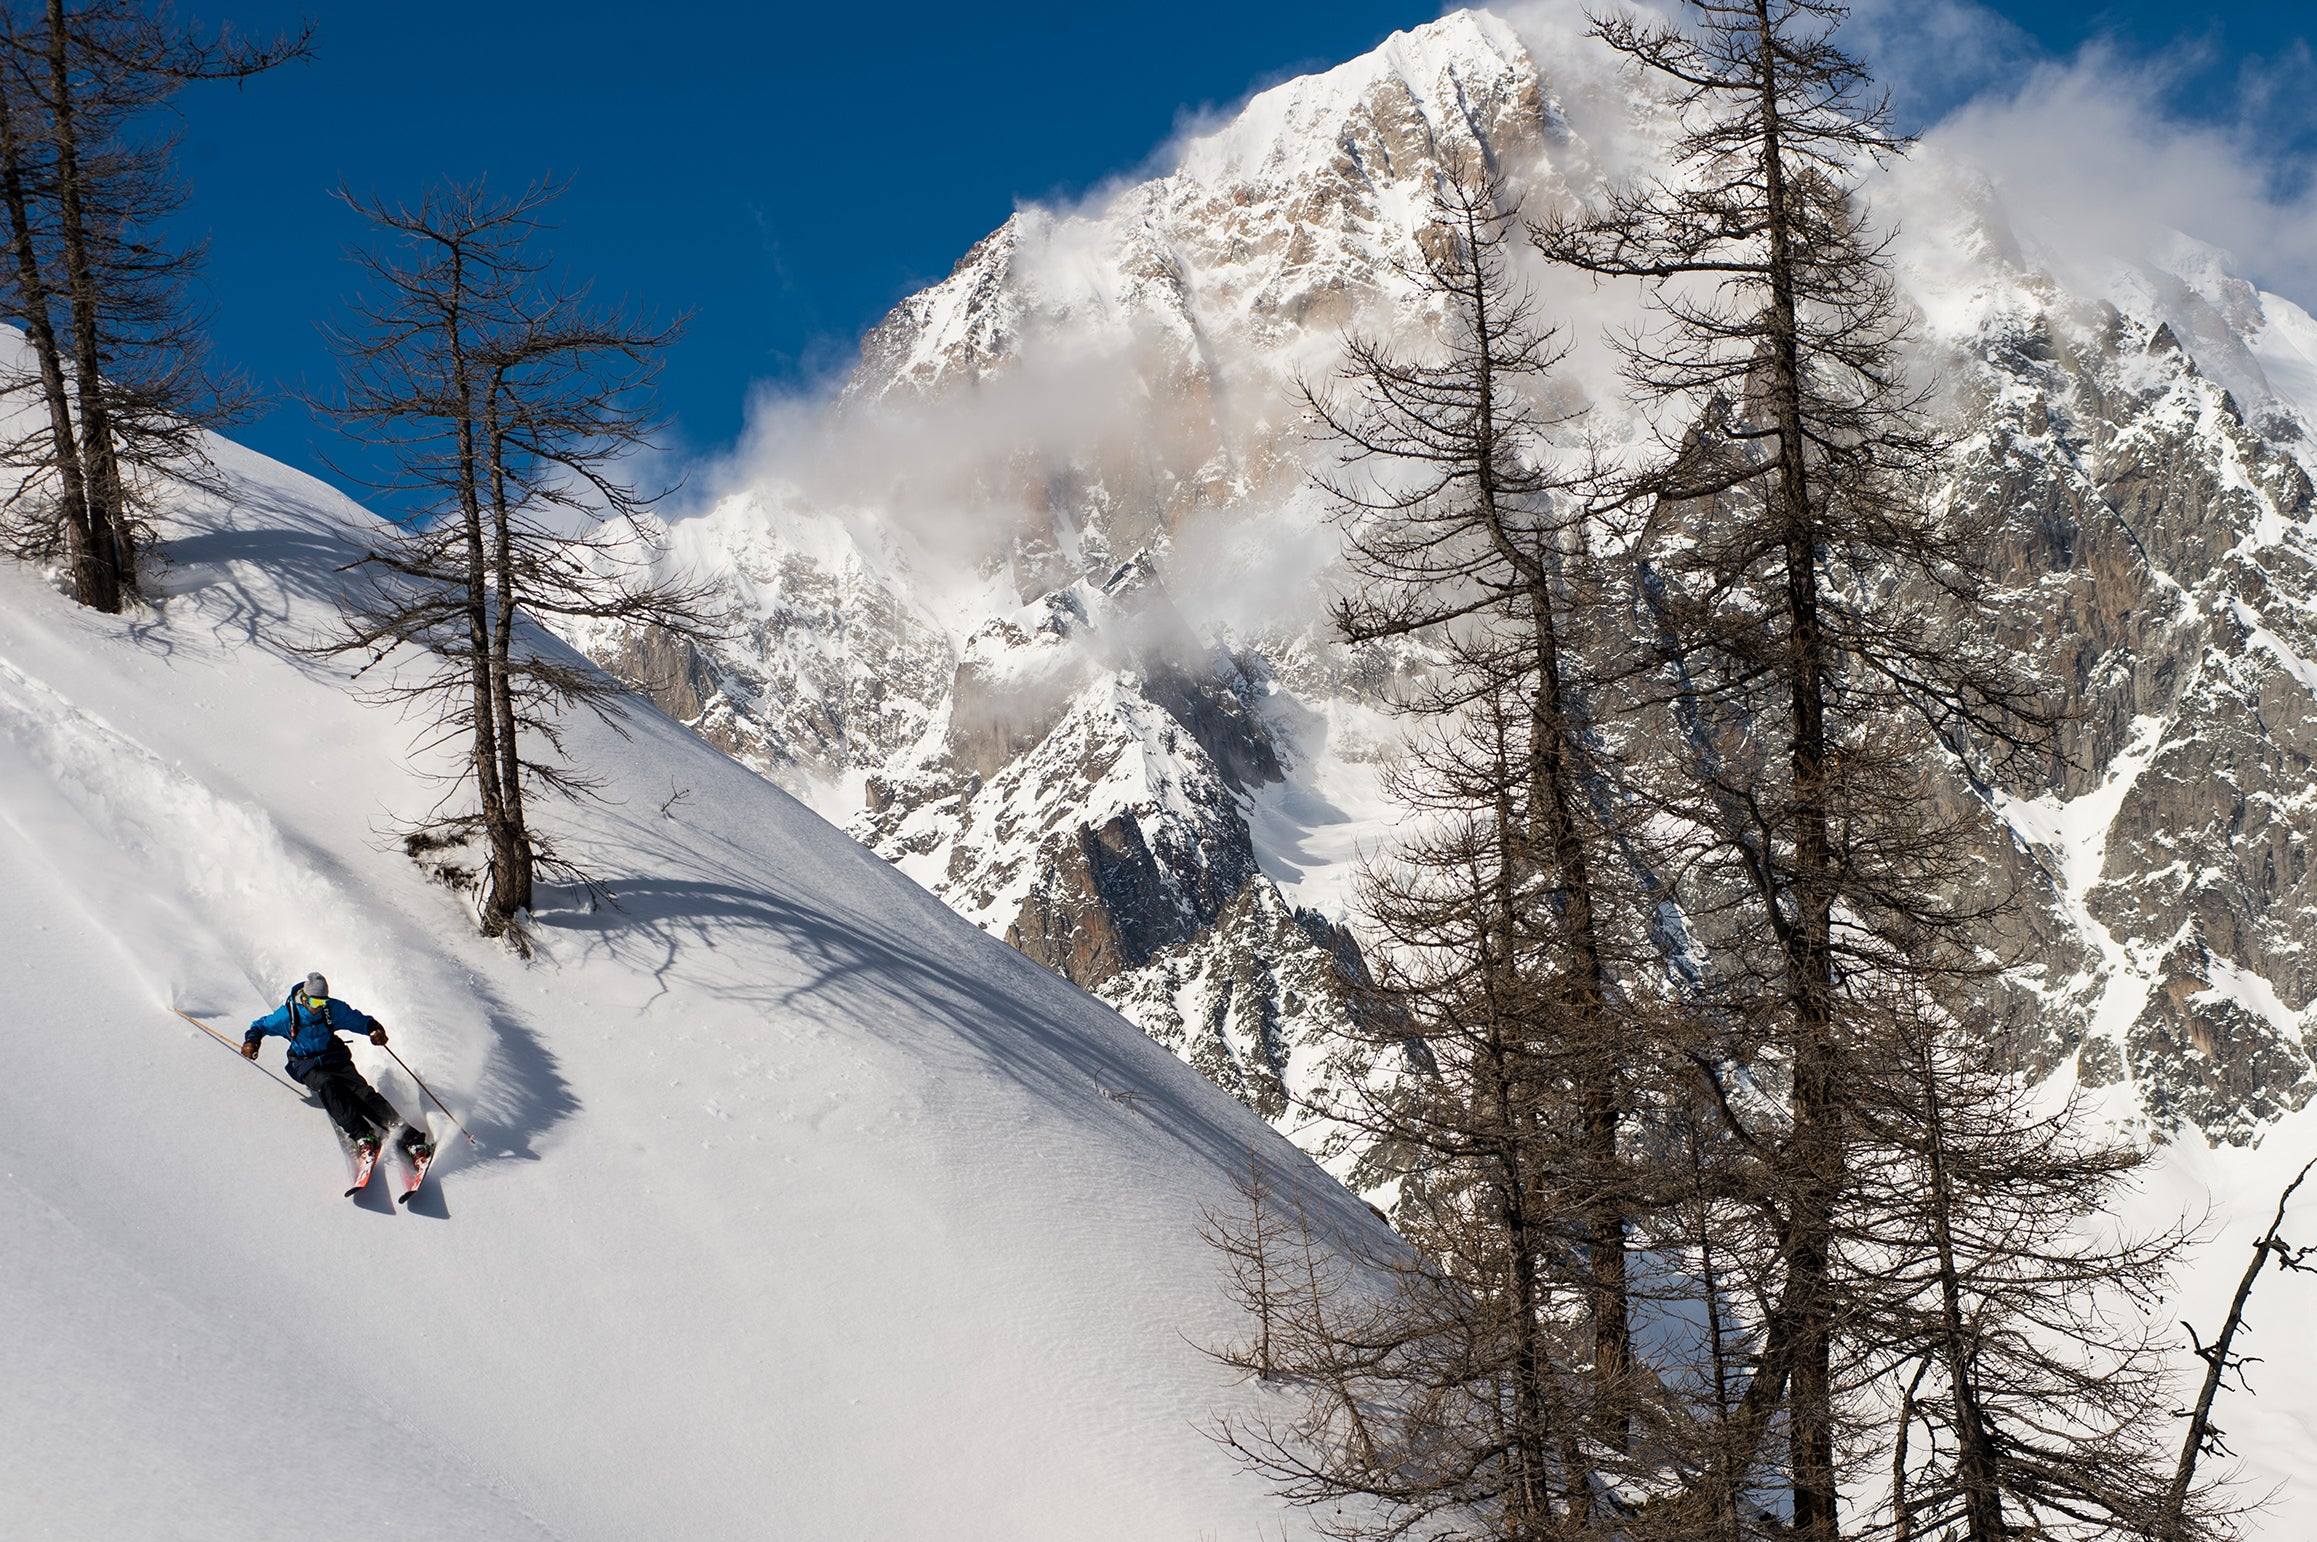 Skier powder turn in Italy